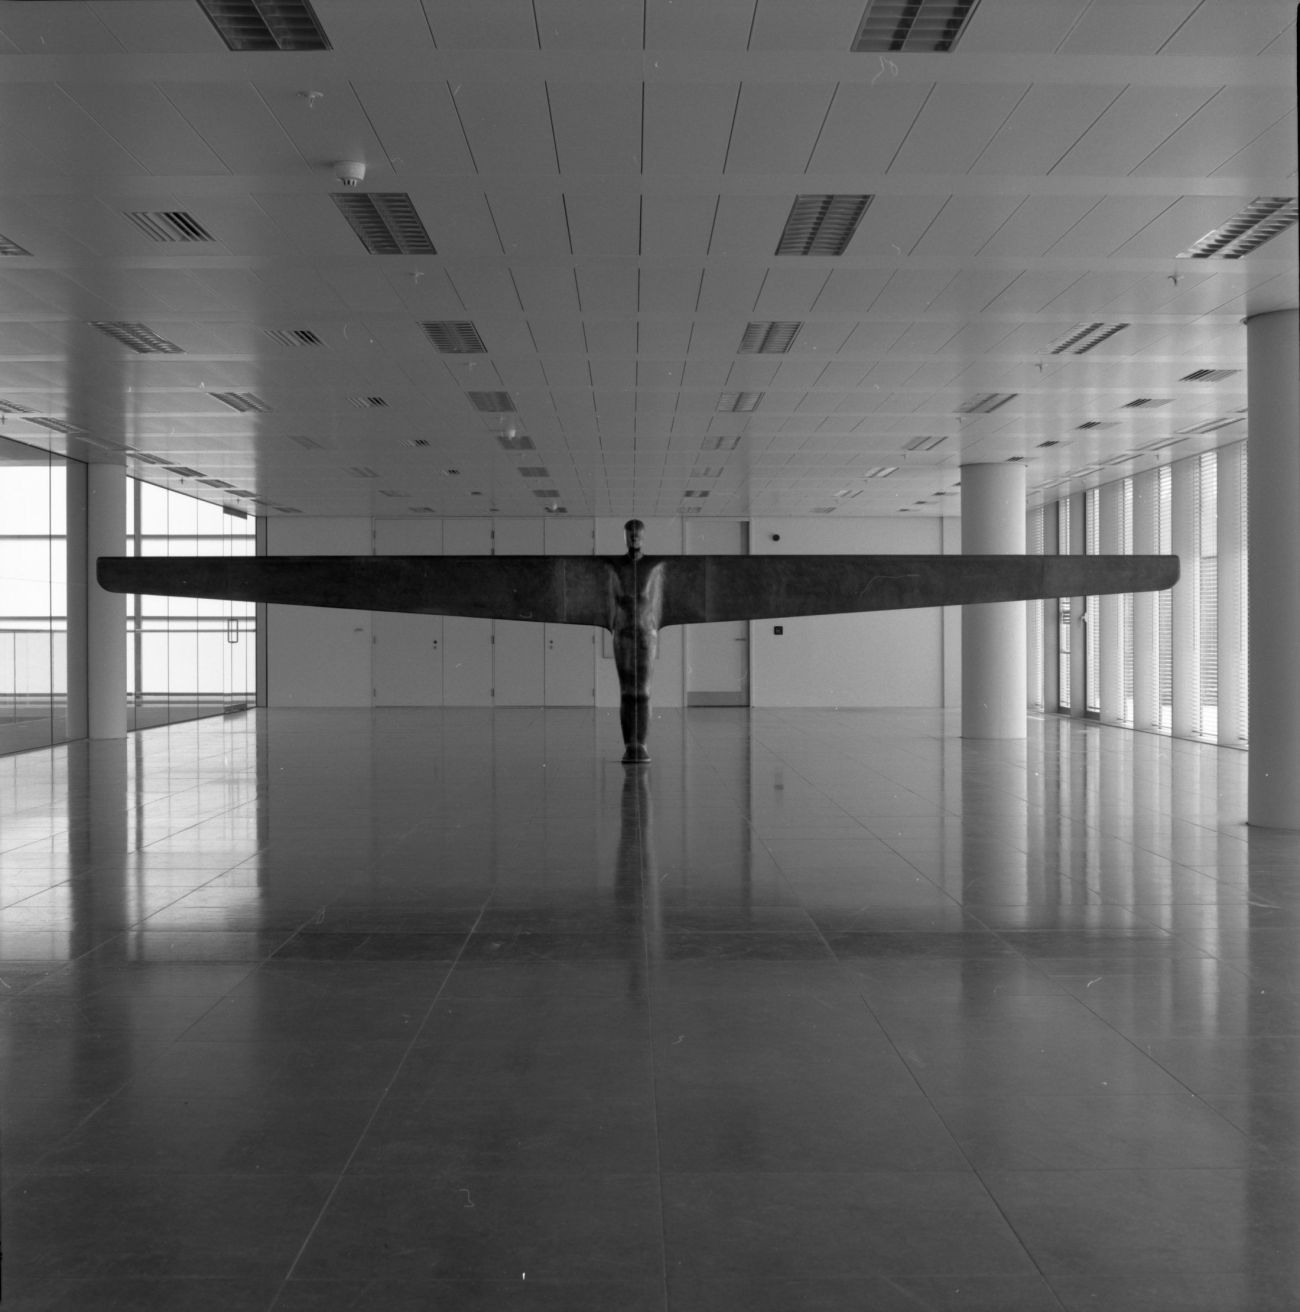 Antony Gormley, Case for an Angel II, 1990, in the exhibition 'Air and Angels', ITN Building, 200 Gray's Inn Road, London, 1994. Photography by Edward Woodman